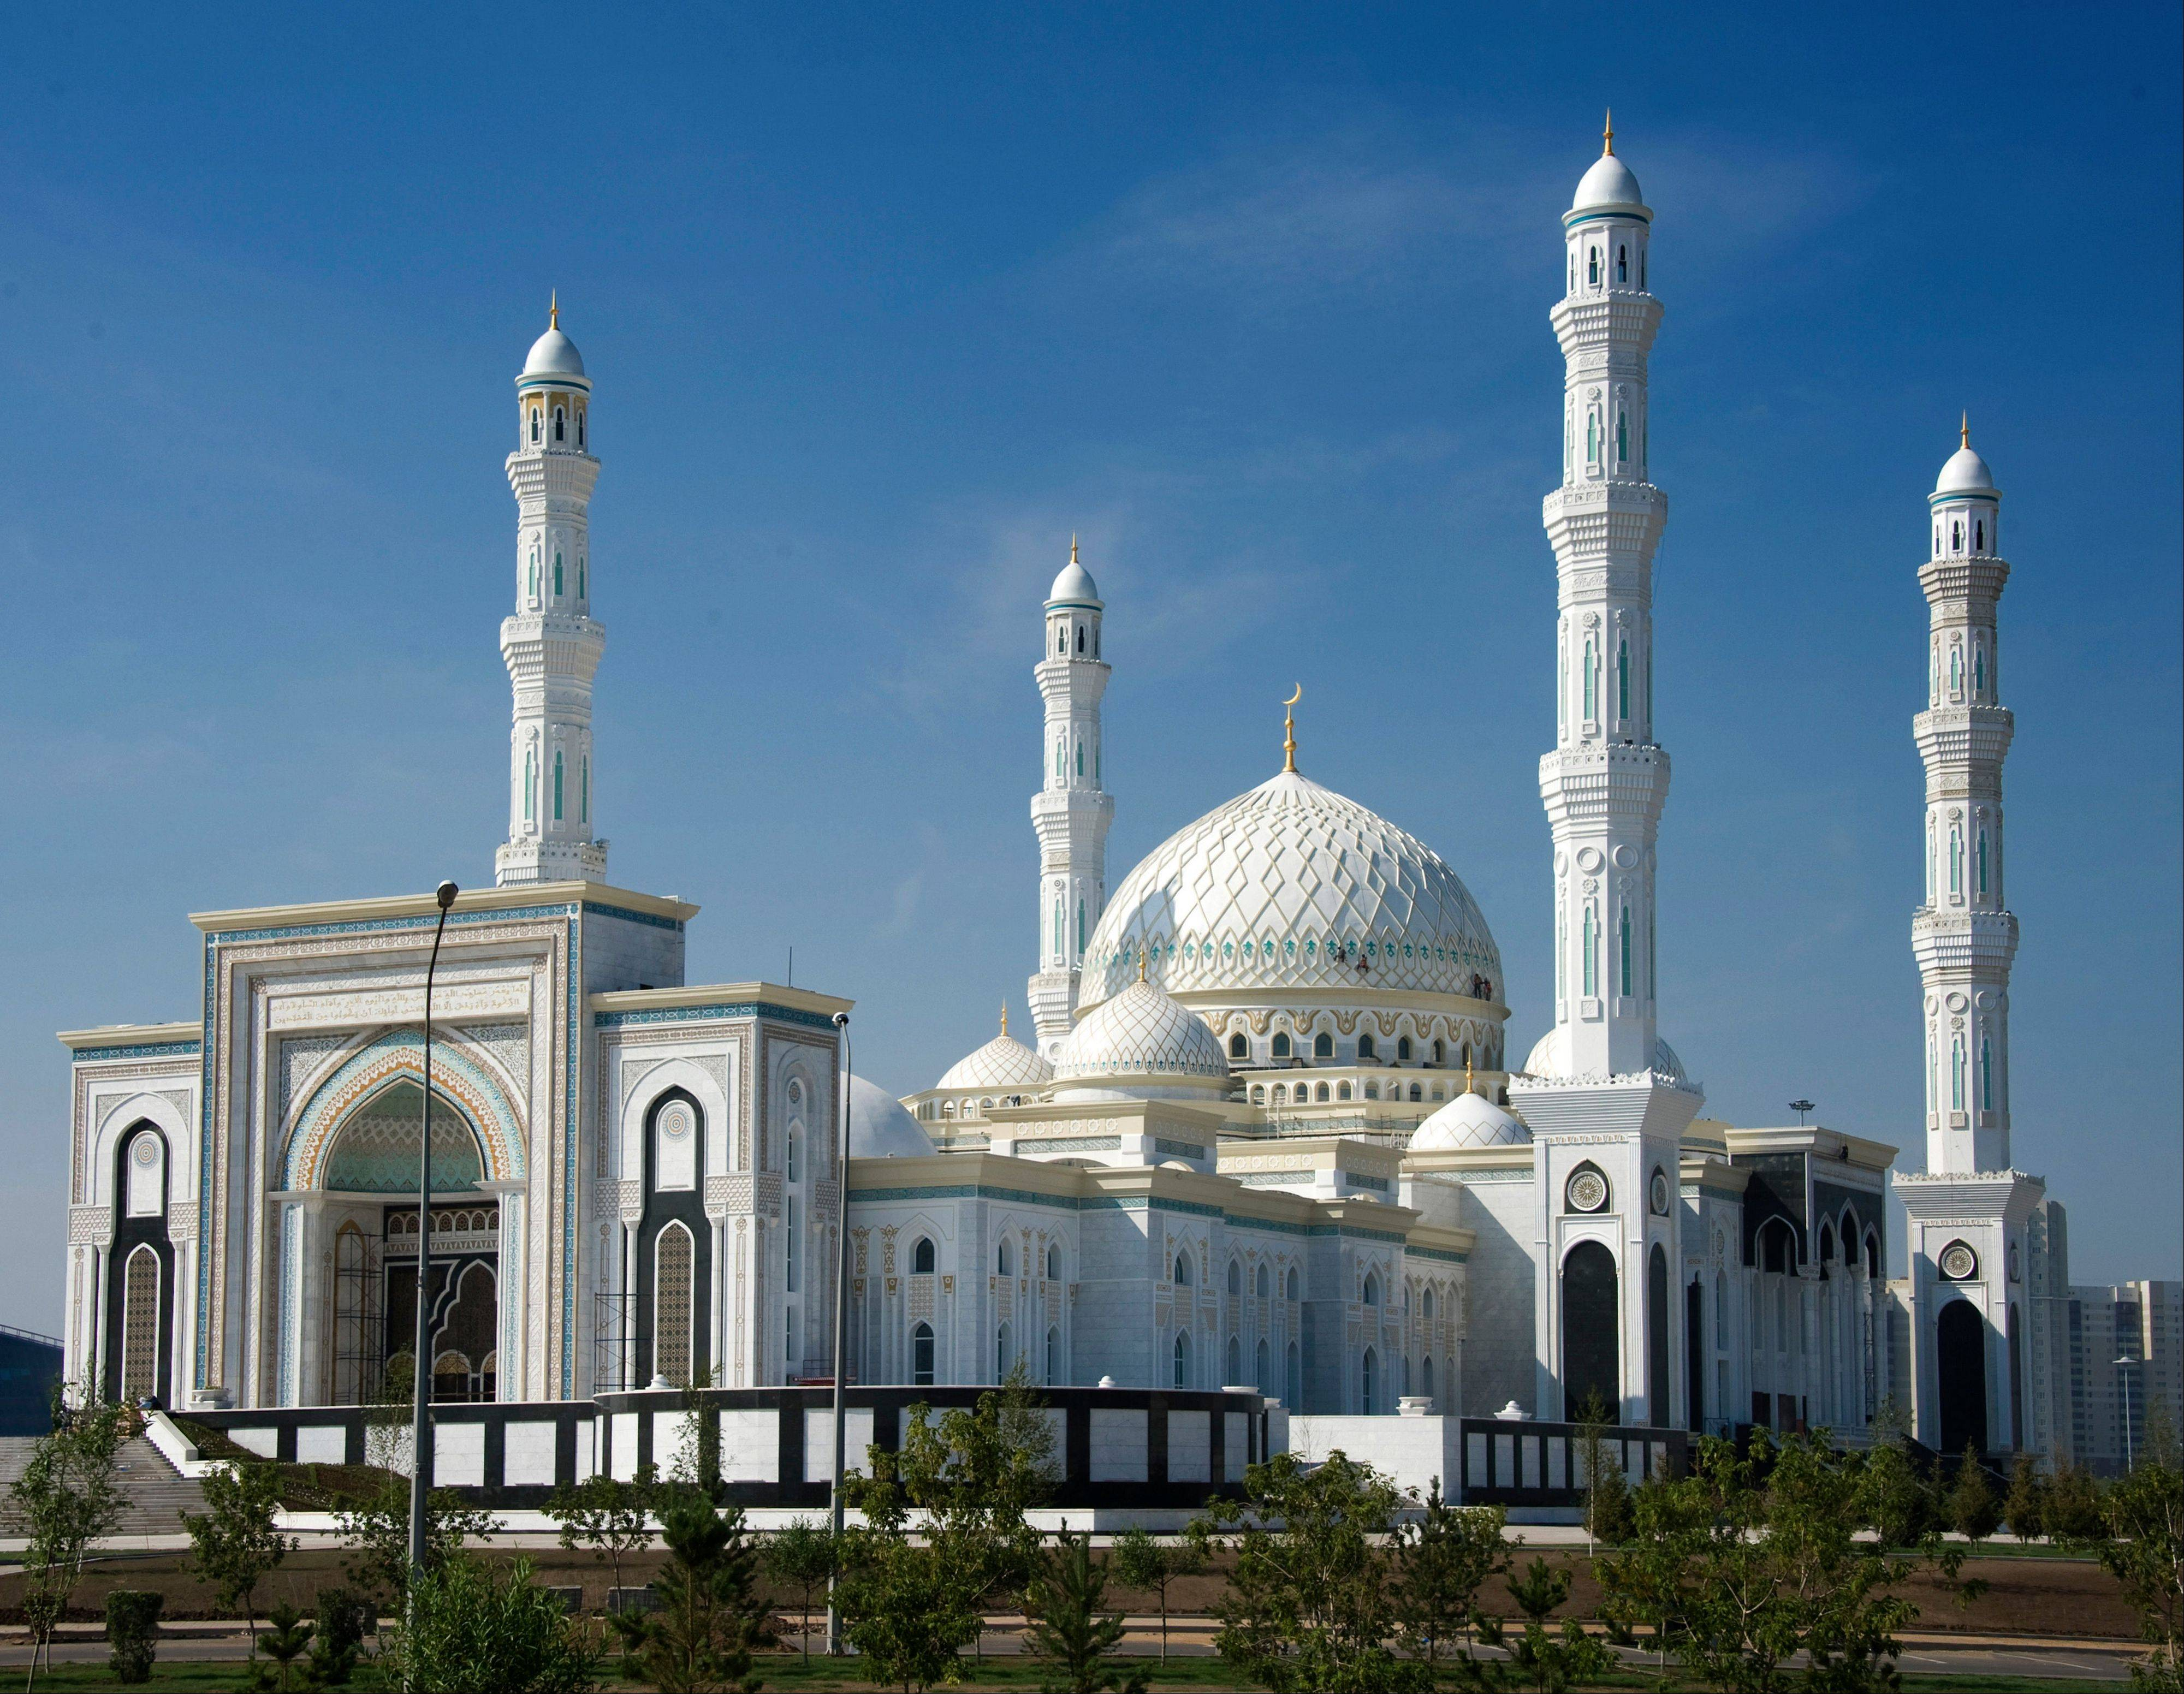 Kazakhstan's Hazrat Sultan Mosque — the largest mosque in Central Asia — has opened just six months after the building was damaged in a fire during which a construction worker died. The mosque spans an area of 188,000 square feet, and is topped by a 167-foot central dome and eight smaller domes.